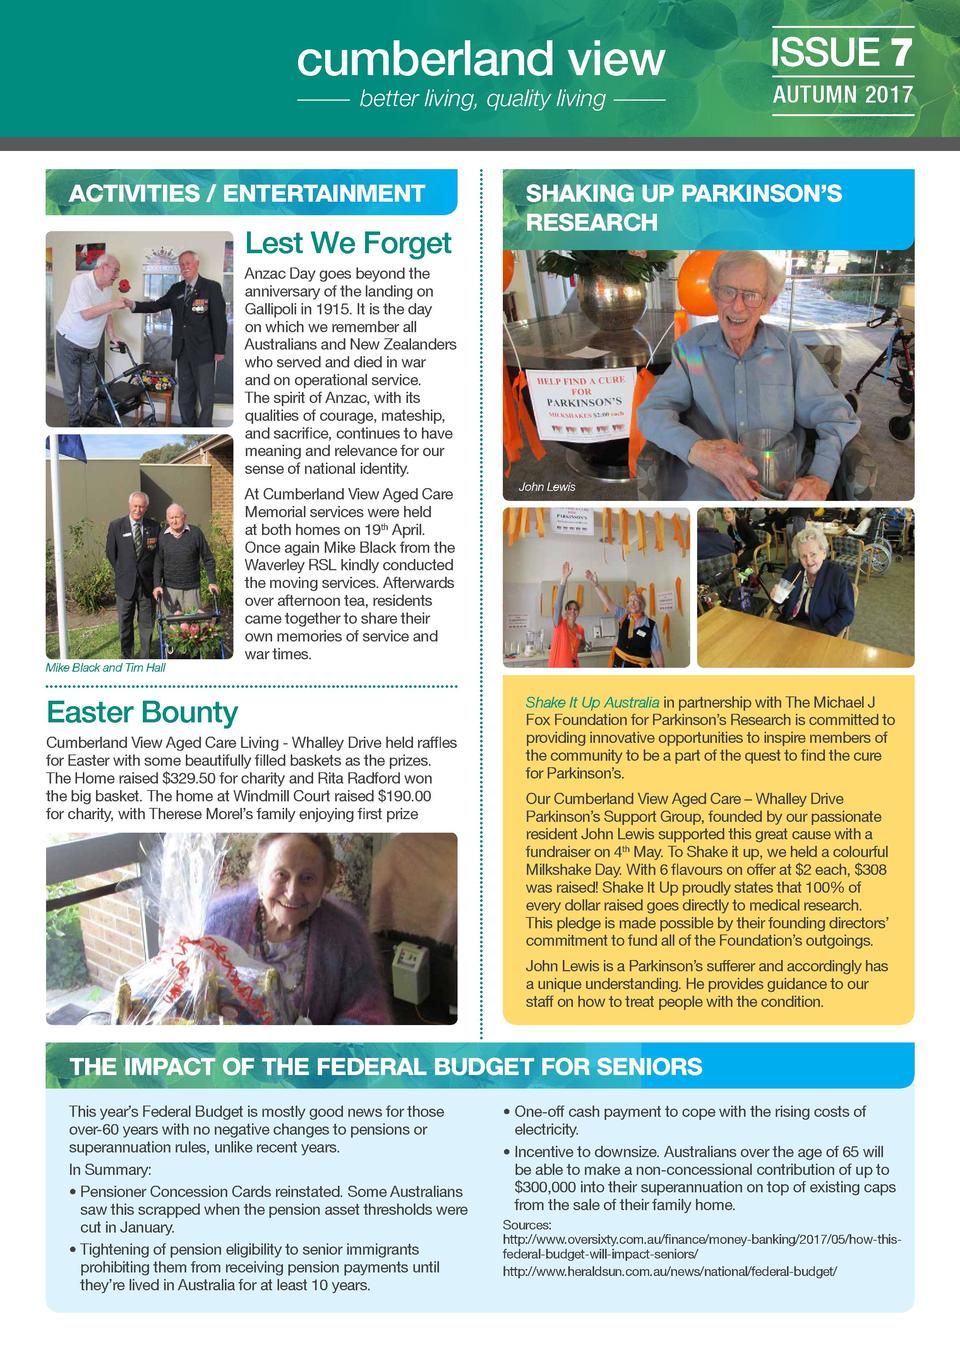 cumberland view better living, quality living  ACTIVITIES   ENTERTAINMENT  Lest We Forget  ISSUE 7 AUTUMN 2017  SHAKING UP...